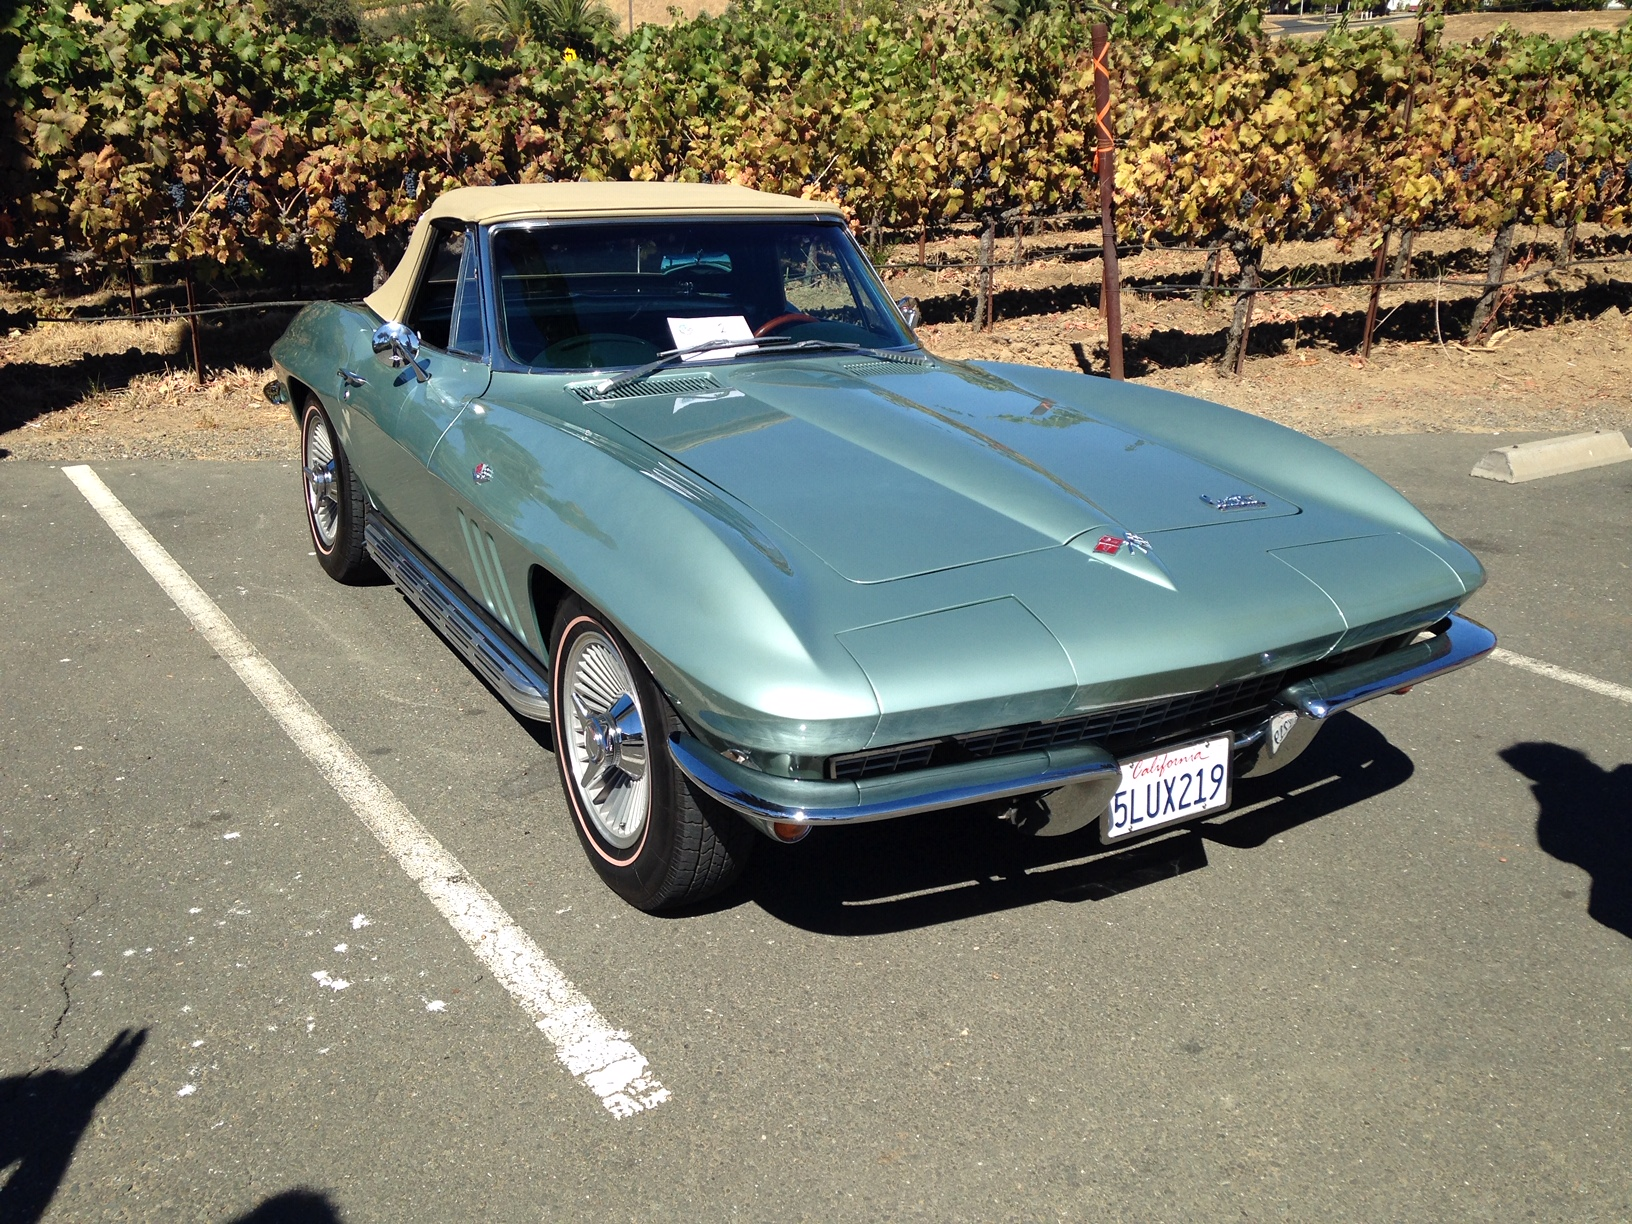 Gary & Angela's 1966 Convertible